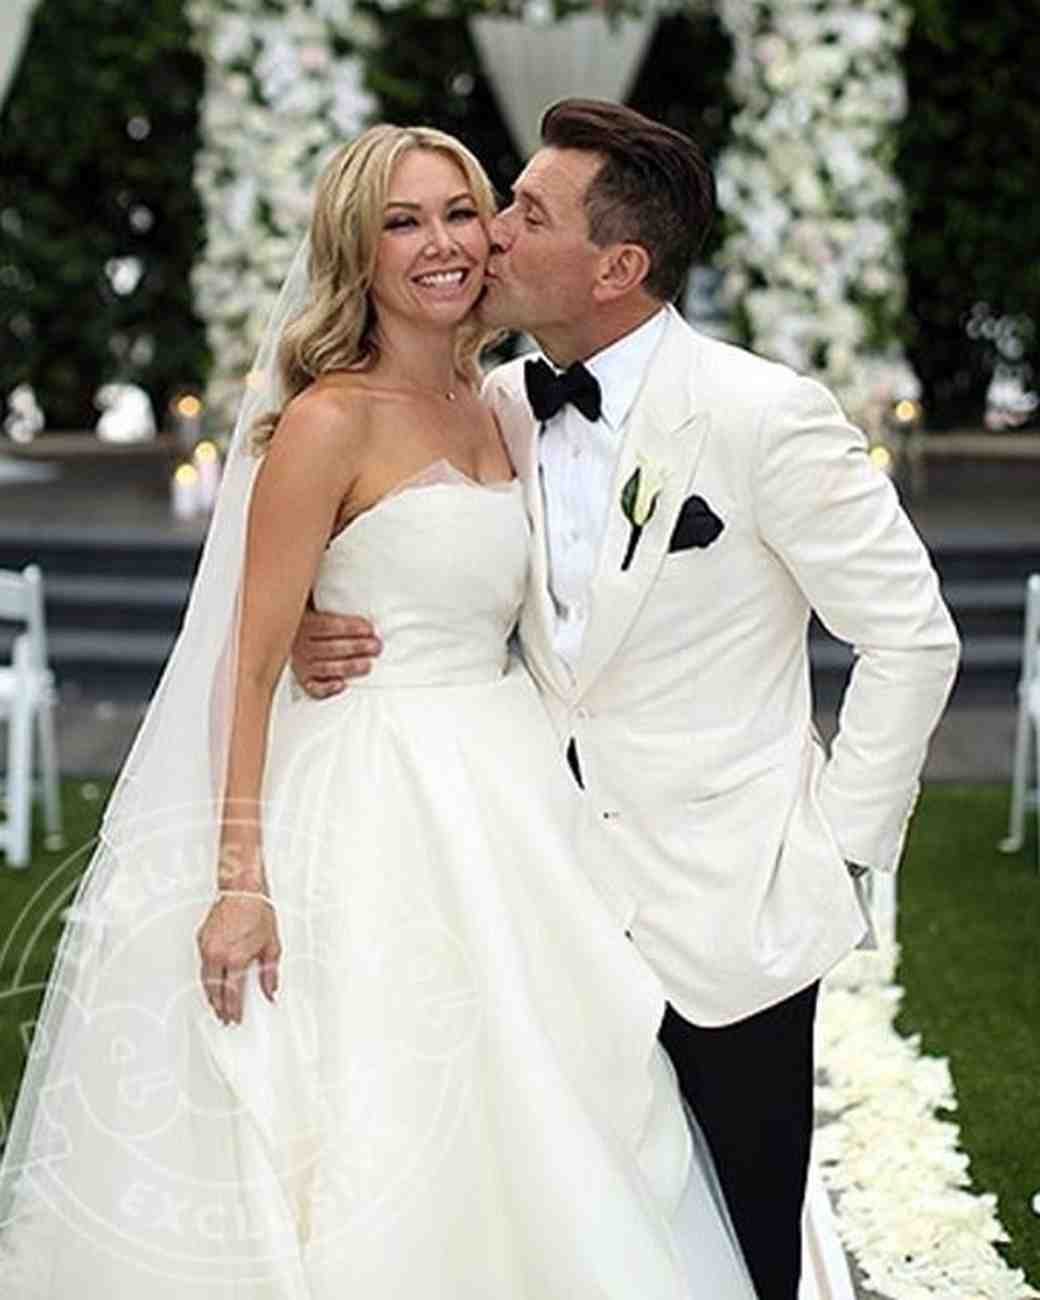 Kym Johnson and Robert Herjavec at Wedding